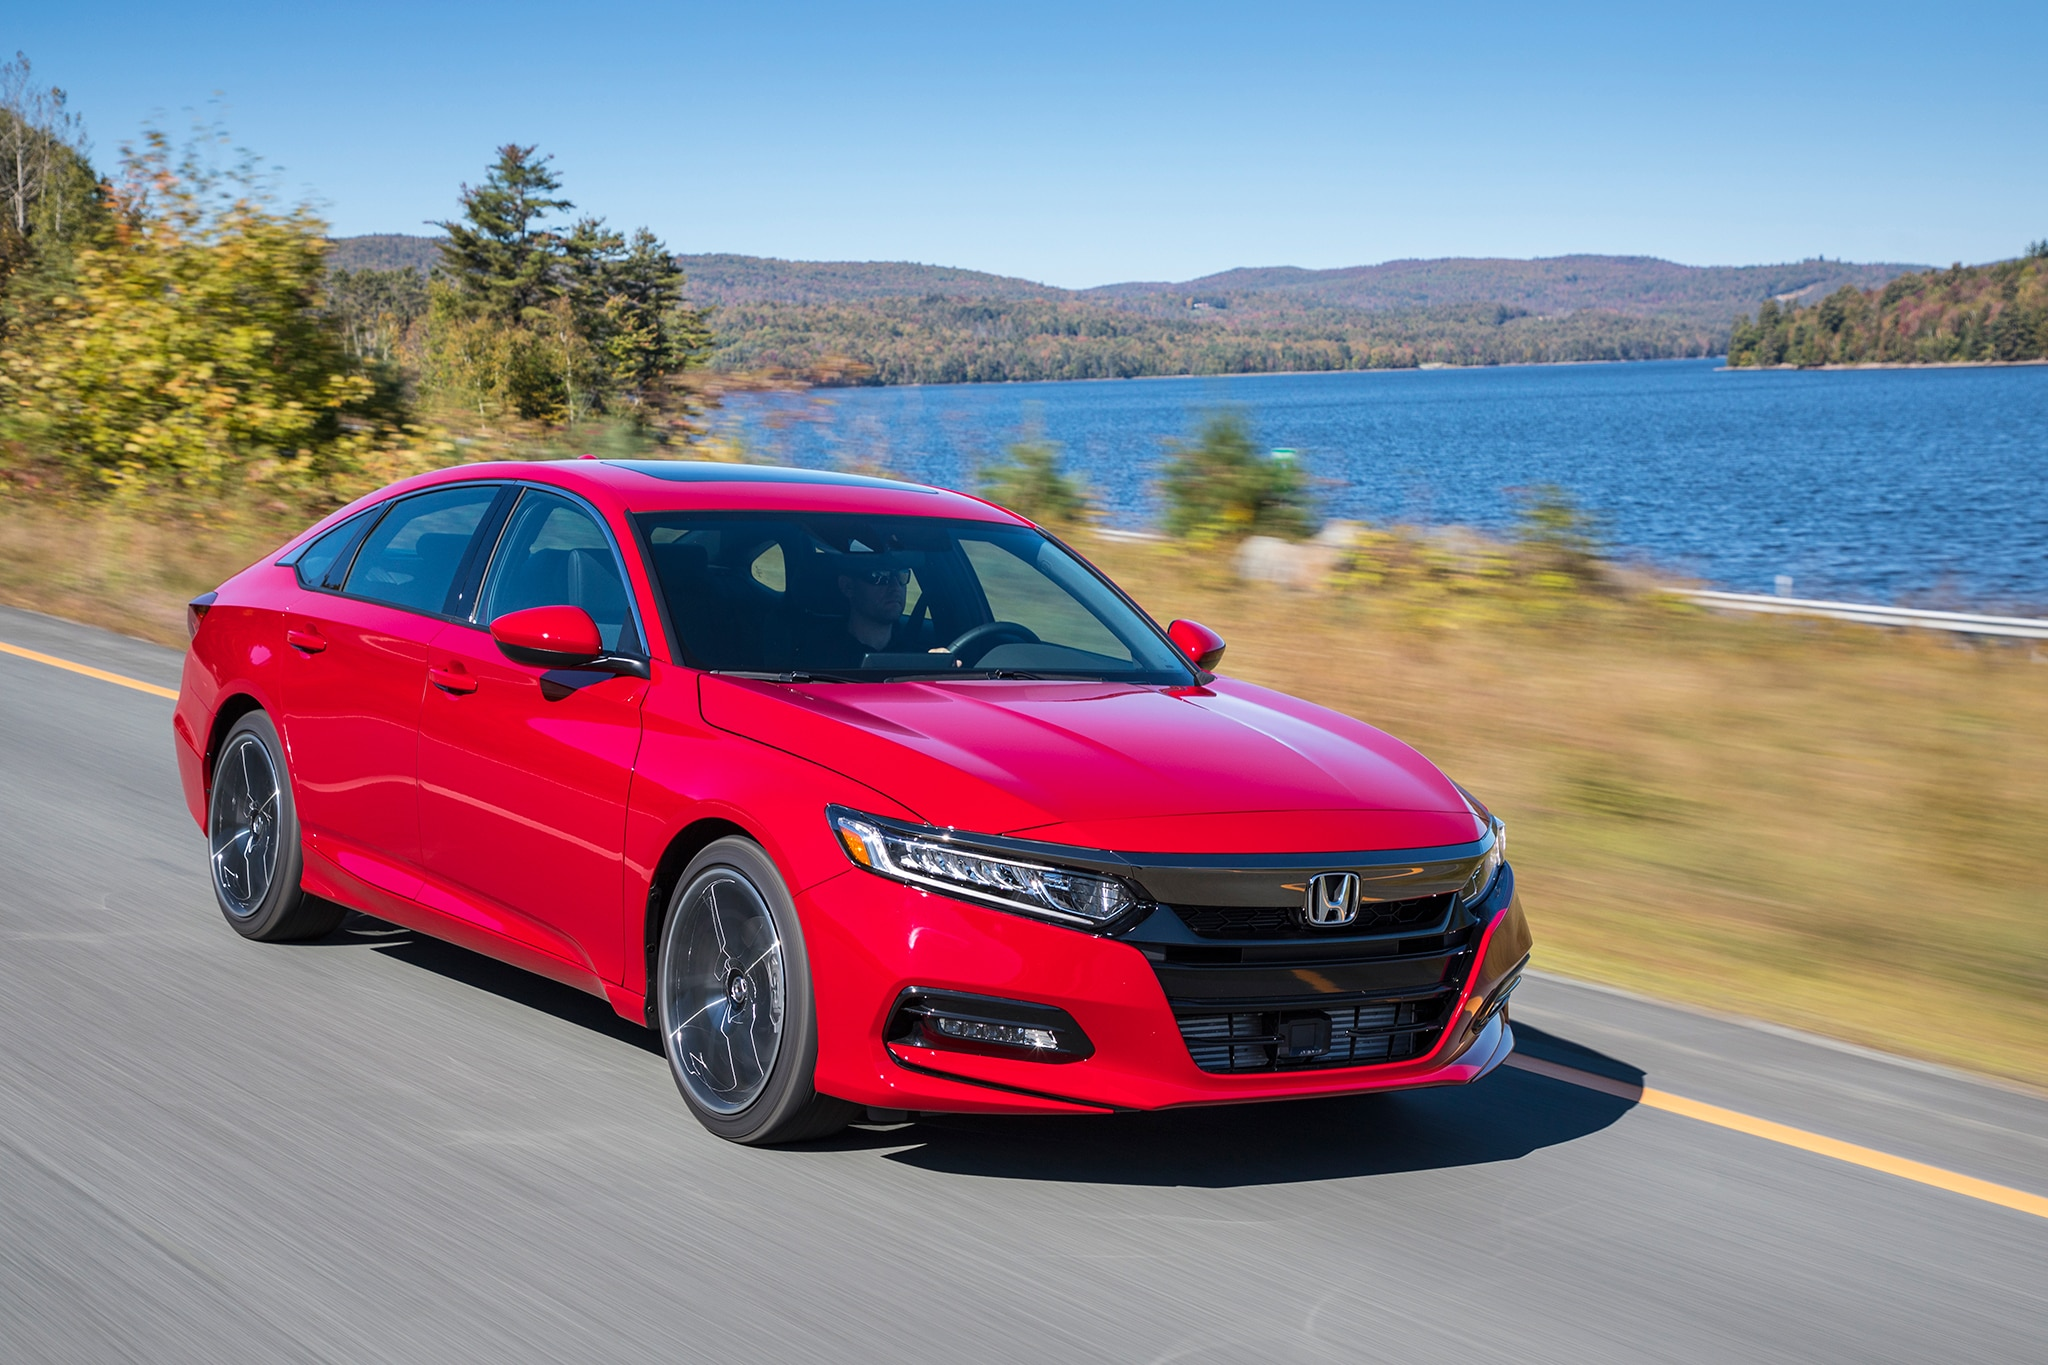 new j power car for photo accord cars accords sale preview honda sedan previews d articles